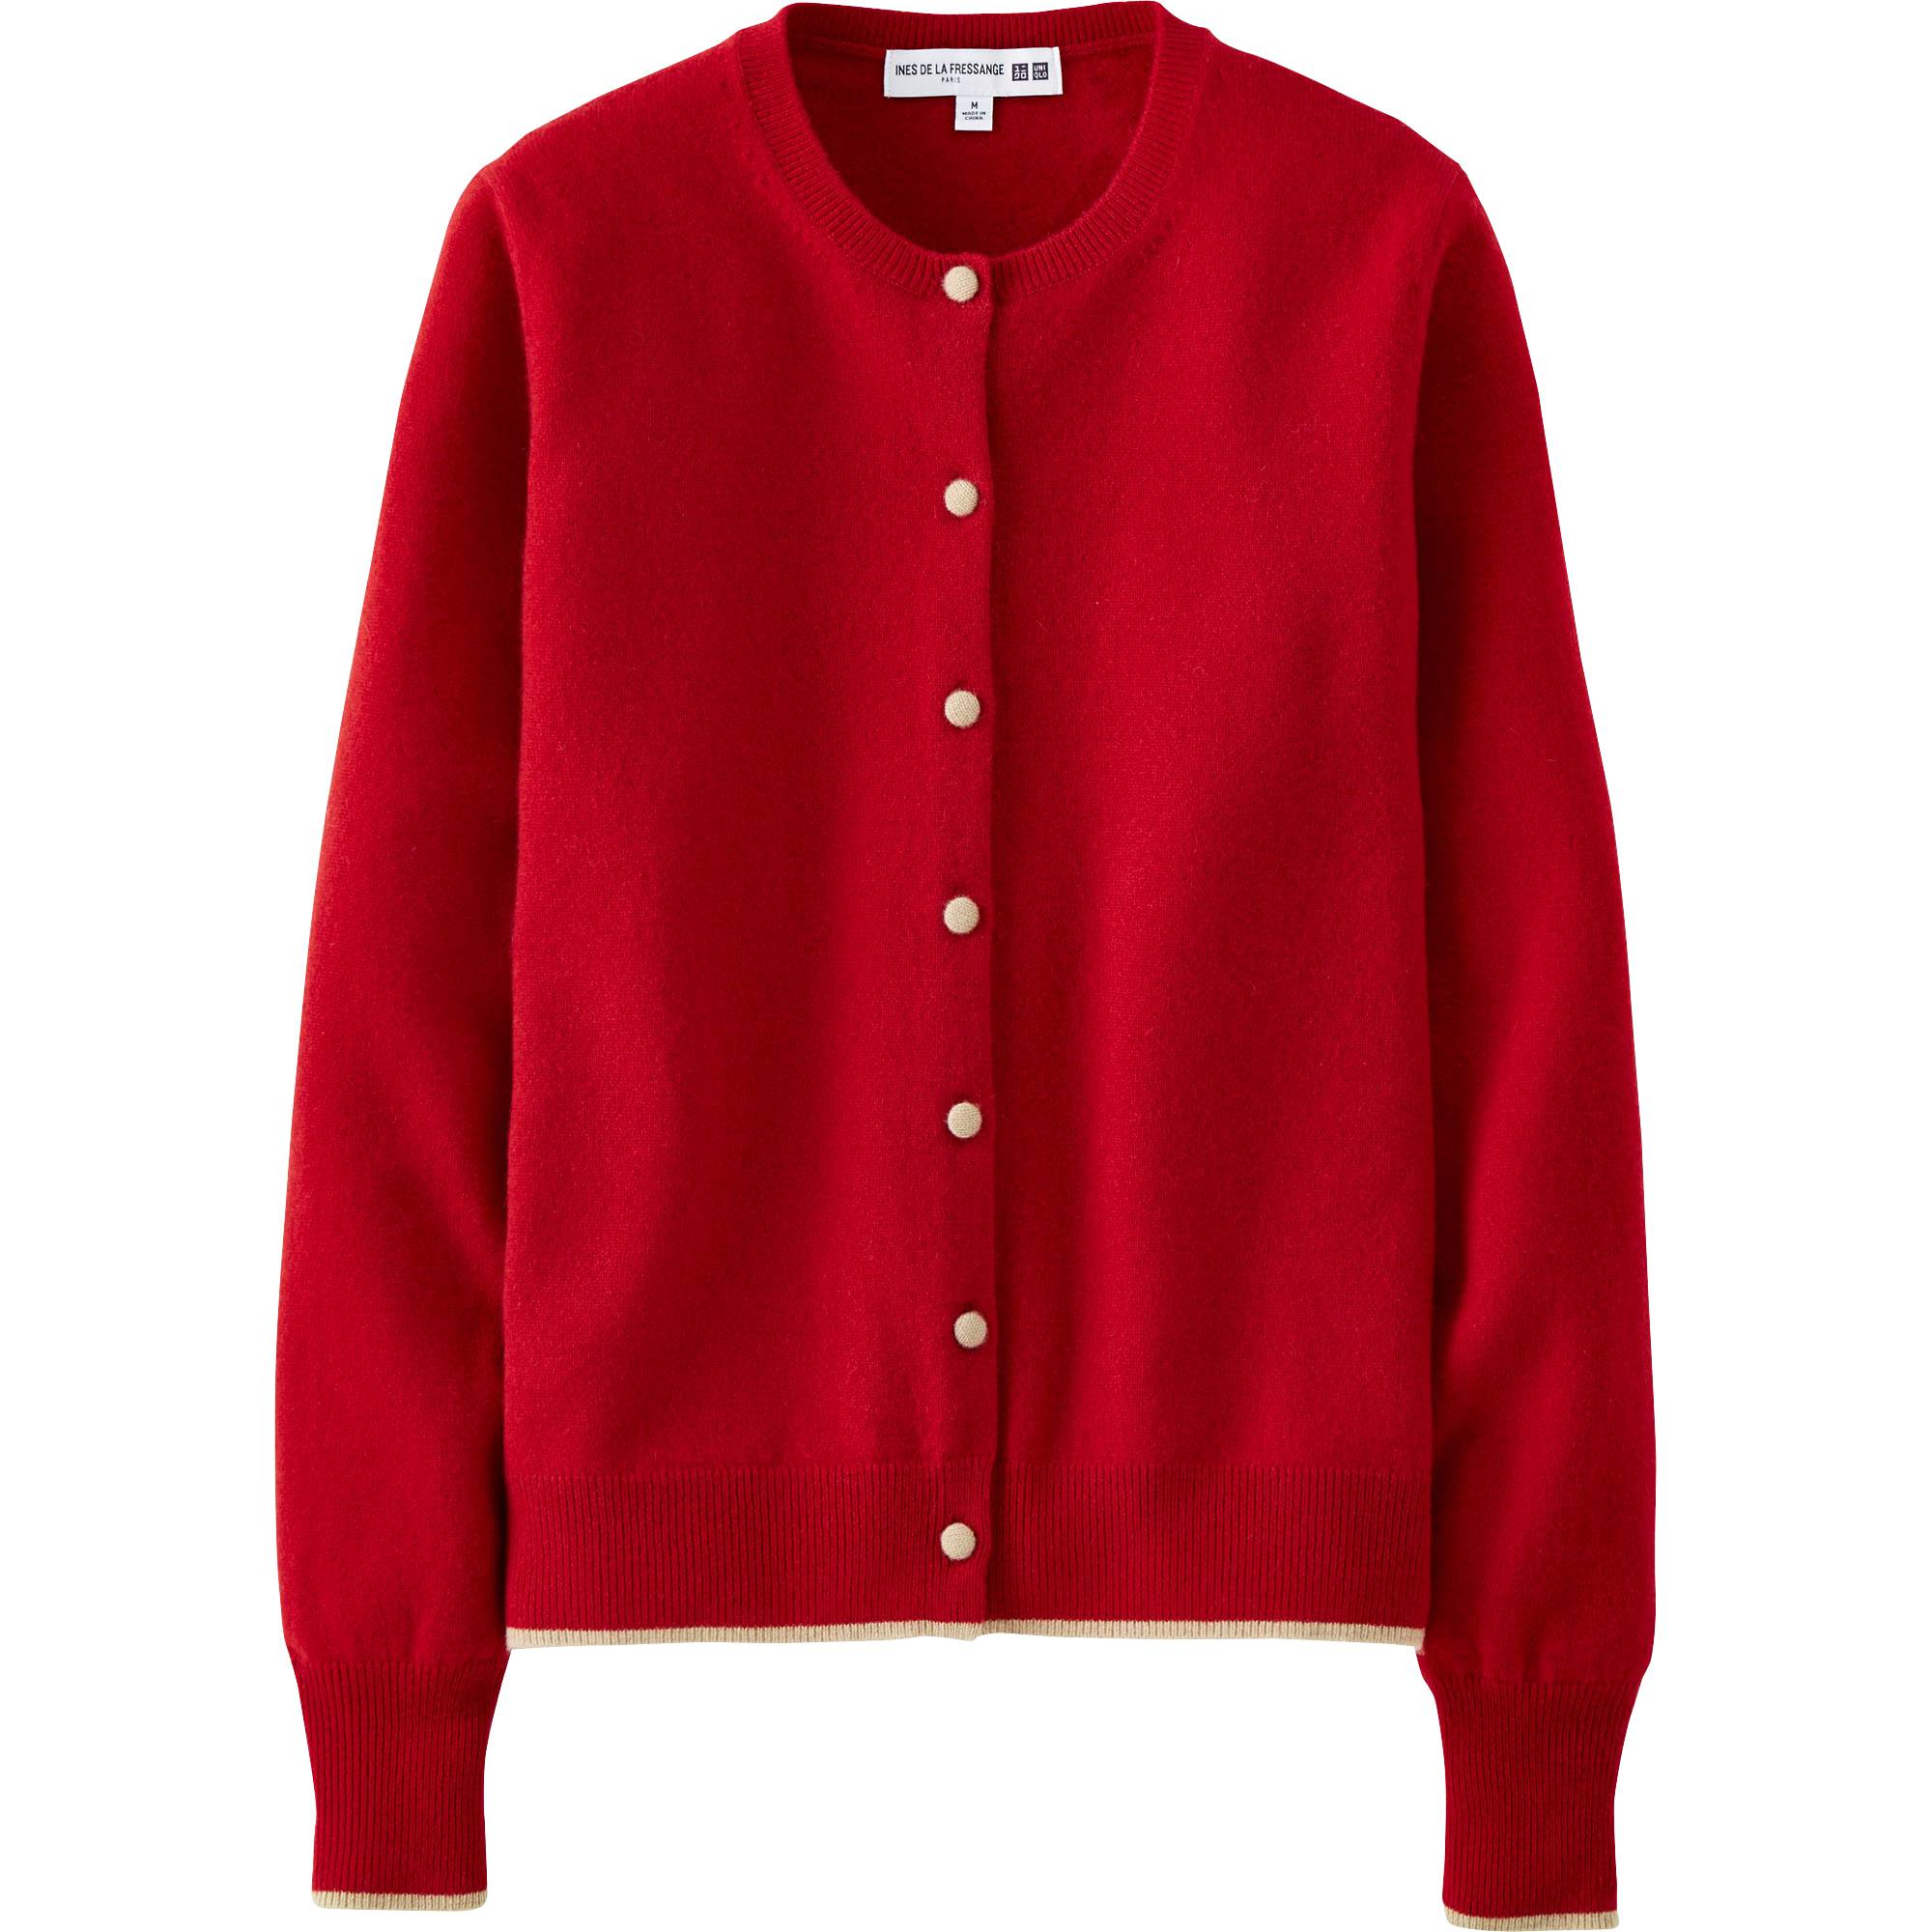 WOMEN IDLF CASHMERE CREW NECK CARDIGAN | UNIQLO US